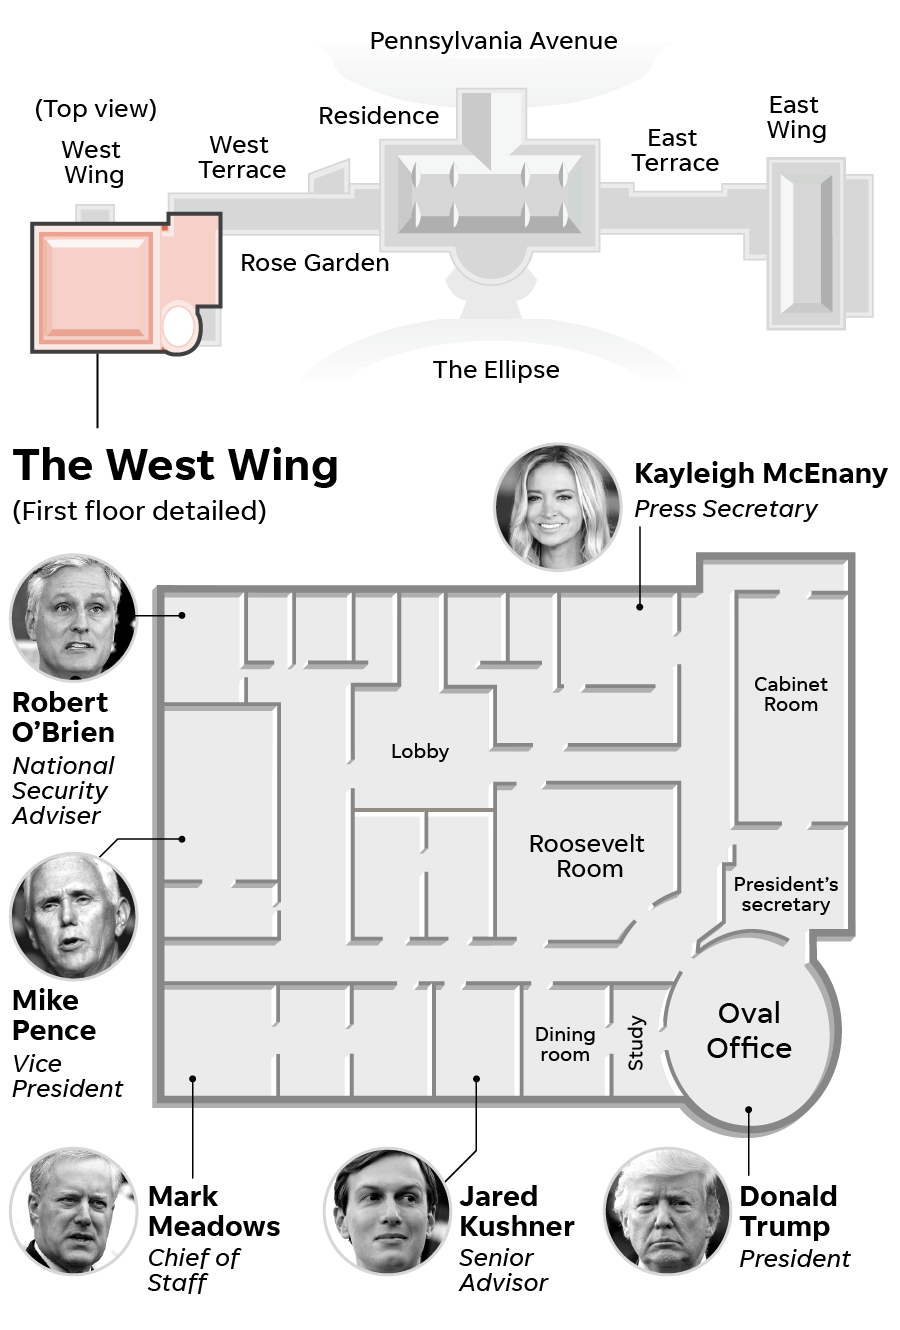 West Wing detail